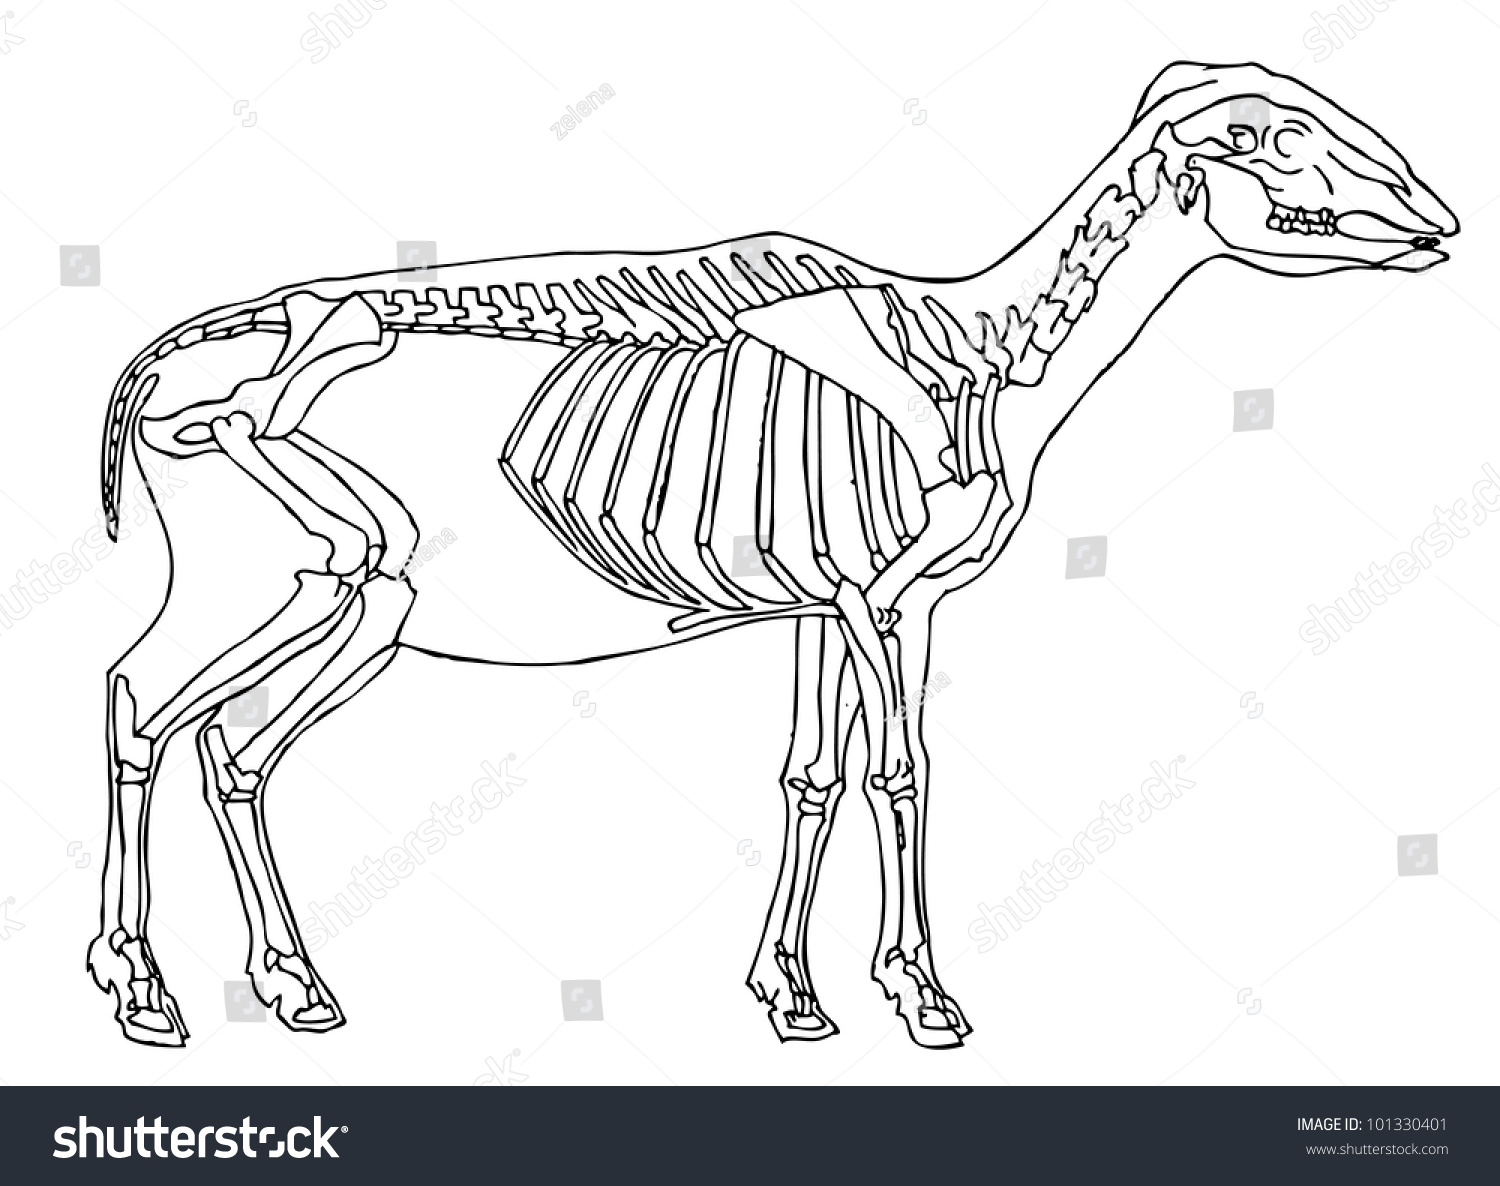 sheep skeleton diagram typical wiring for house drawing stock vector royalty free 101330401 of